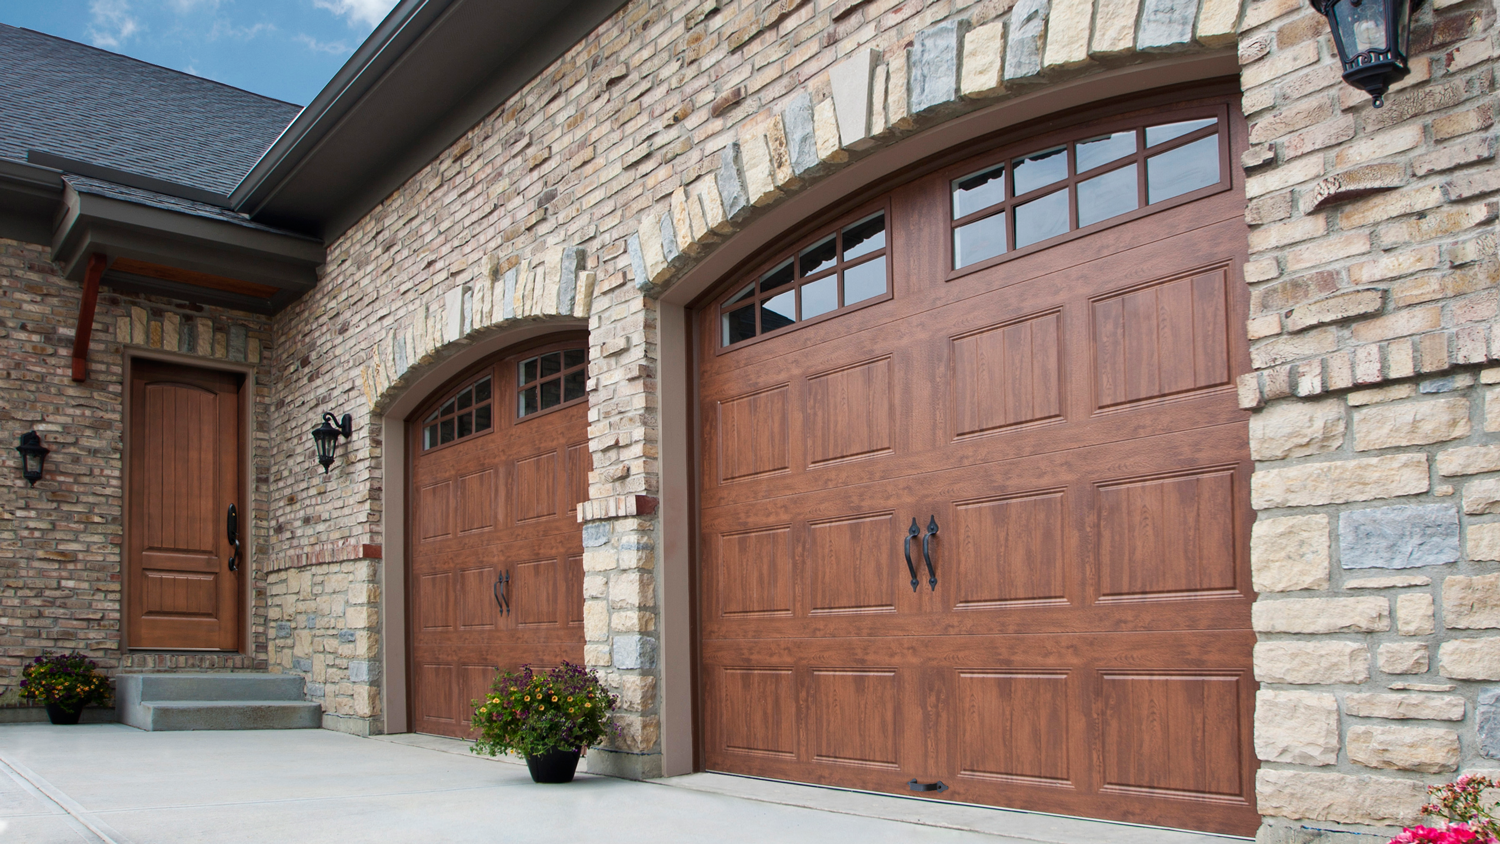 We have numerous garage doors and other parts at the ready at very good pricing. Contact us now to consult with a certified garage door expert. & Garage Door Repair McFarland WI - PRO Garage Door Service